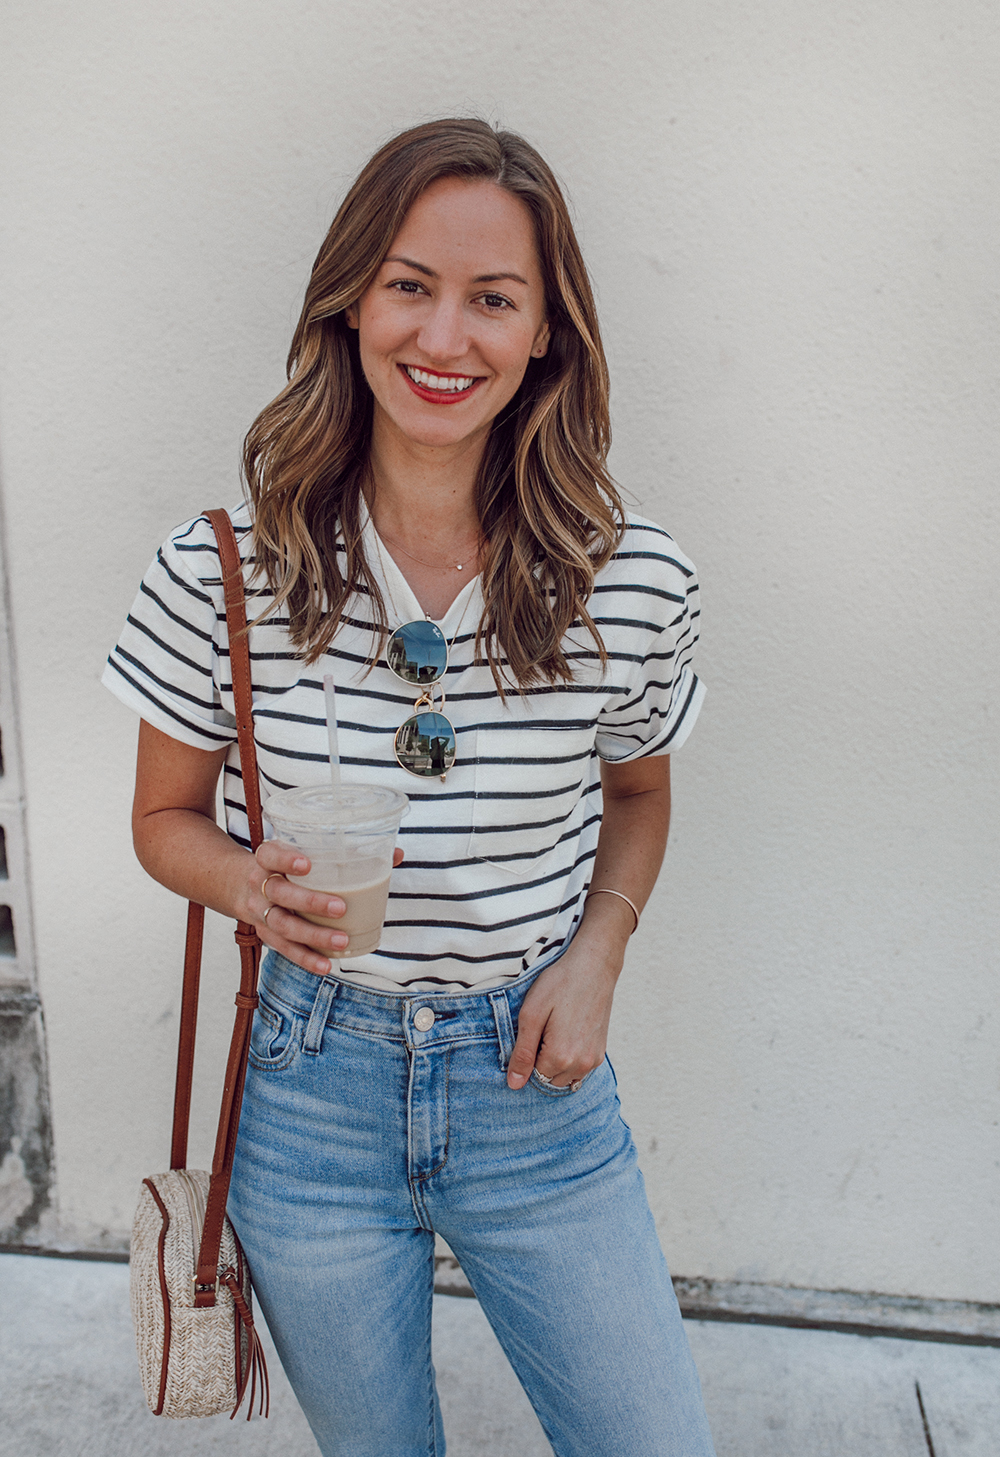 livvyland-blog-olivia-watson-sole-society-red-sandal-flats-spring-summer-outfit-idea-style-austin-texas-fashion-blogger-striped-shirt-1